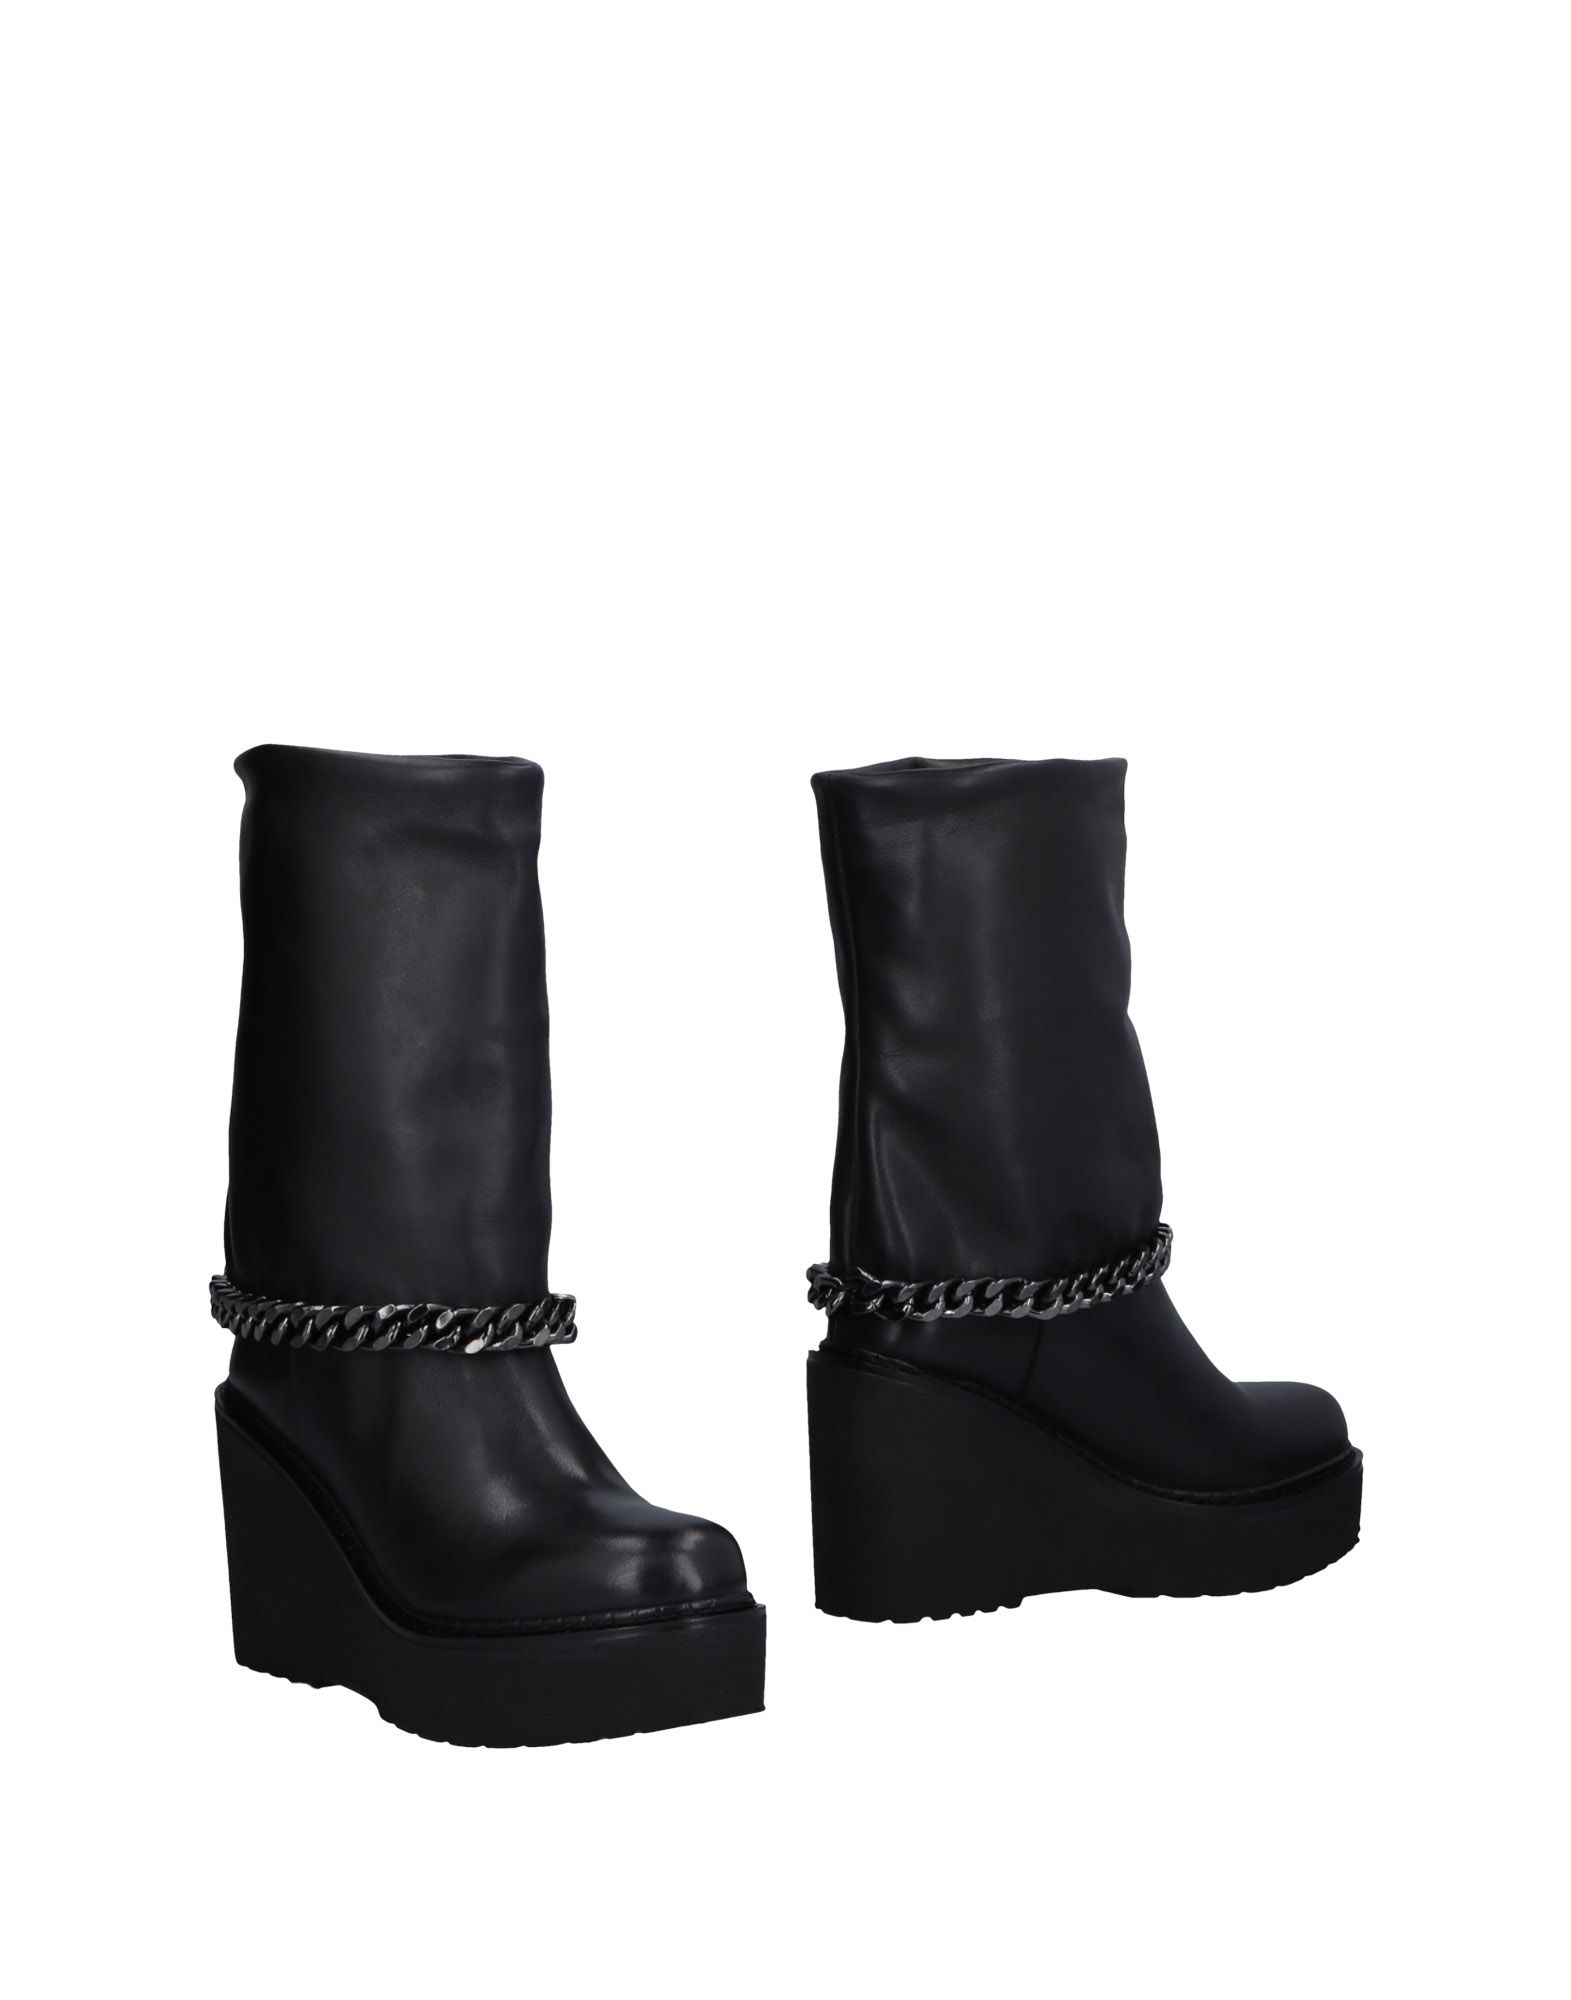 Cult Ankle Boot Boots - Women Cult Ankle Boots Boot online on  Australia - 11473868PG 7653ee